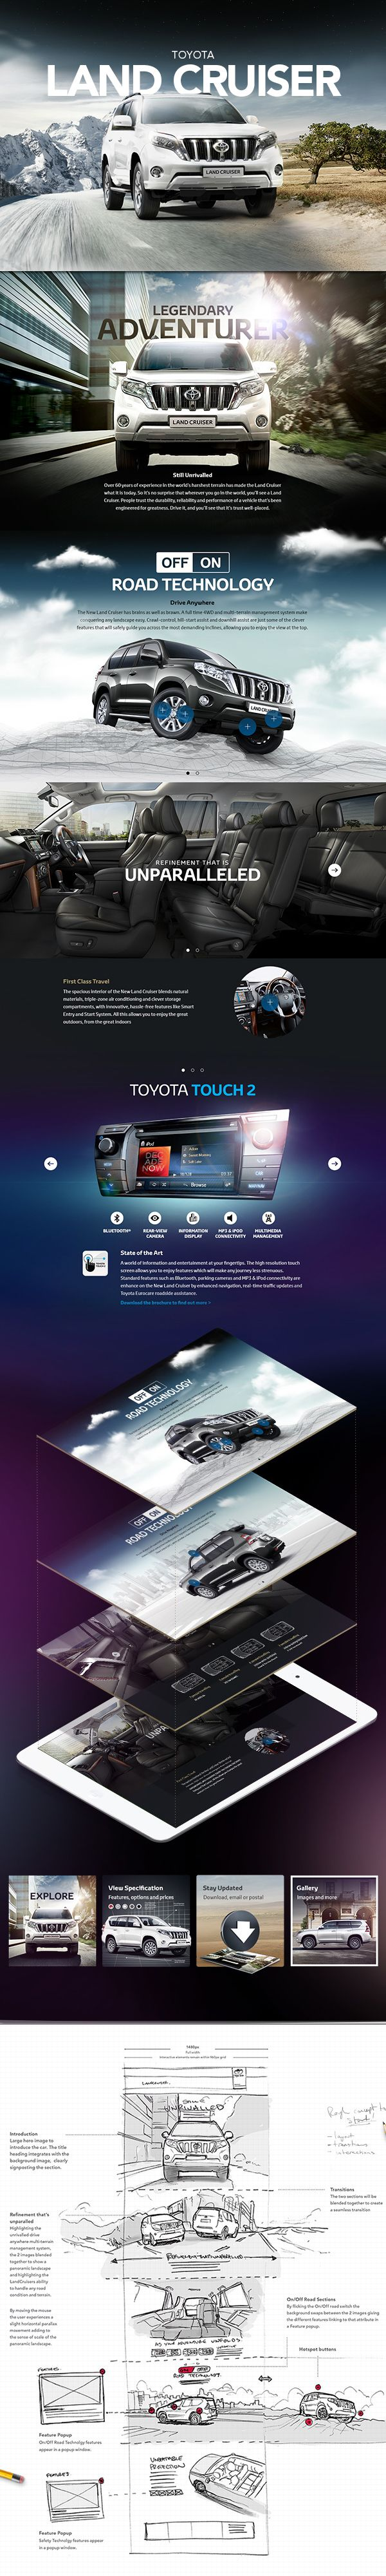 Cool Automotive Web Design. Toyota. #automotive #webdesign [http://www.pinterest.com/alfredchong/]